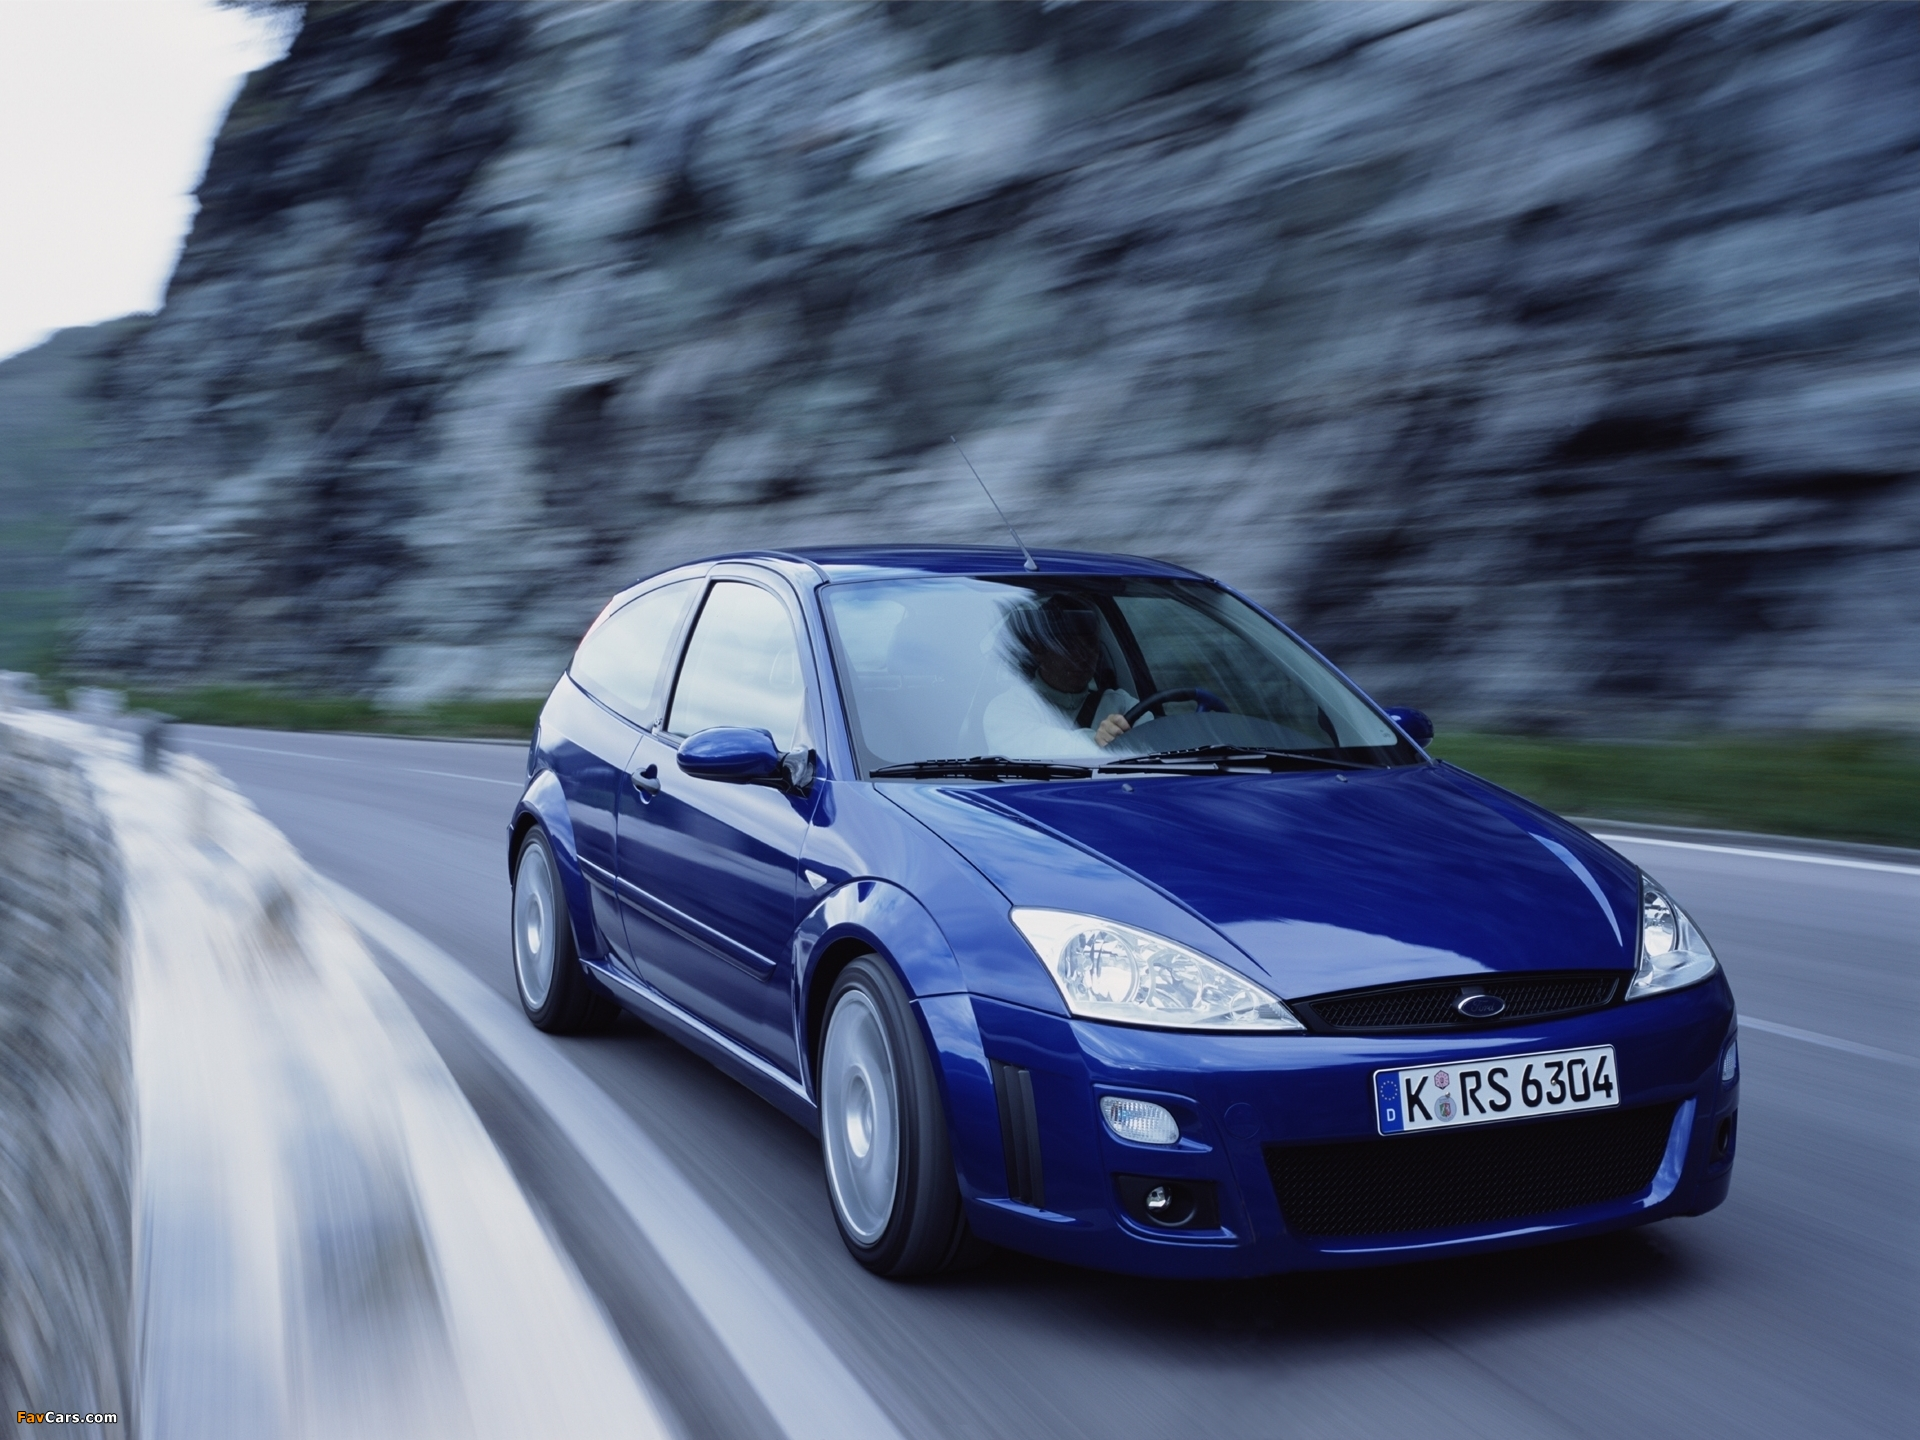 Ford Focus Rs 200203 Wallpapers 1920x1440